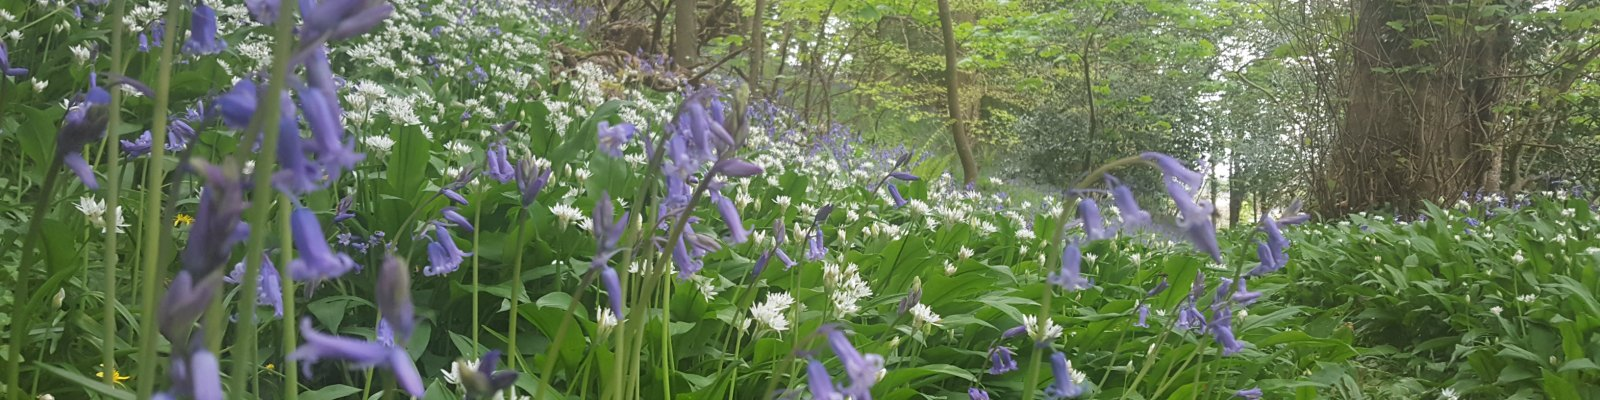 DRG Consulting Ltd Bluebells